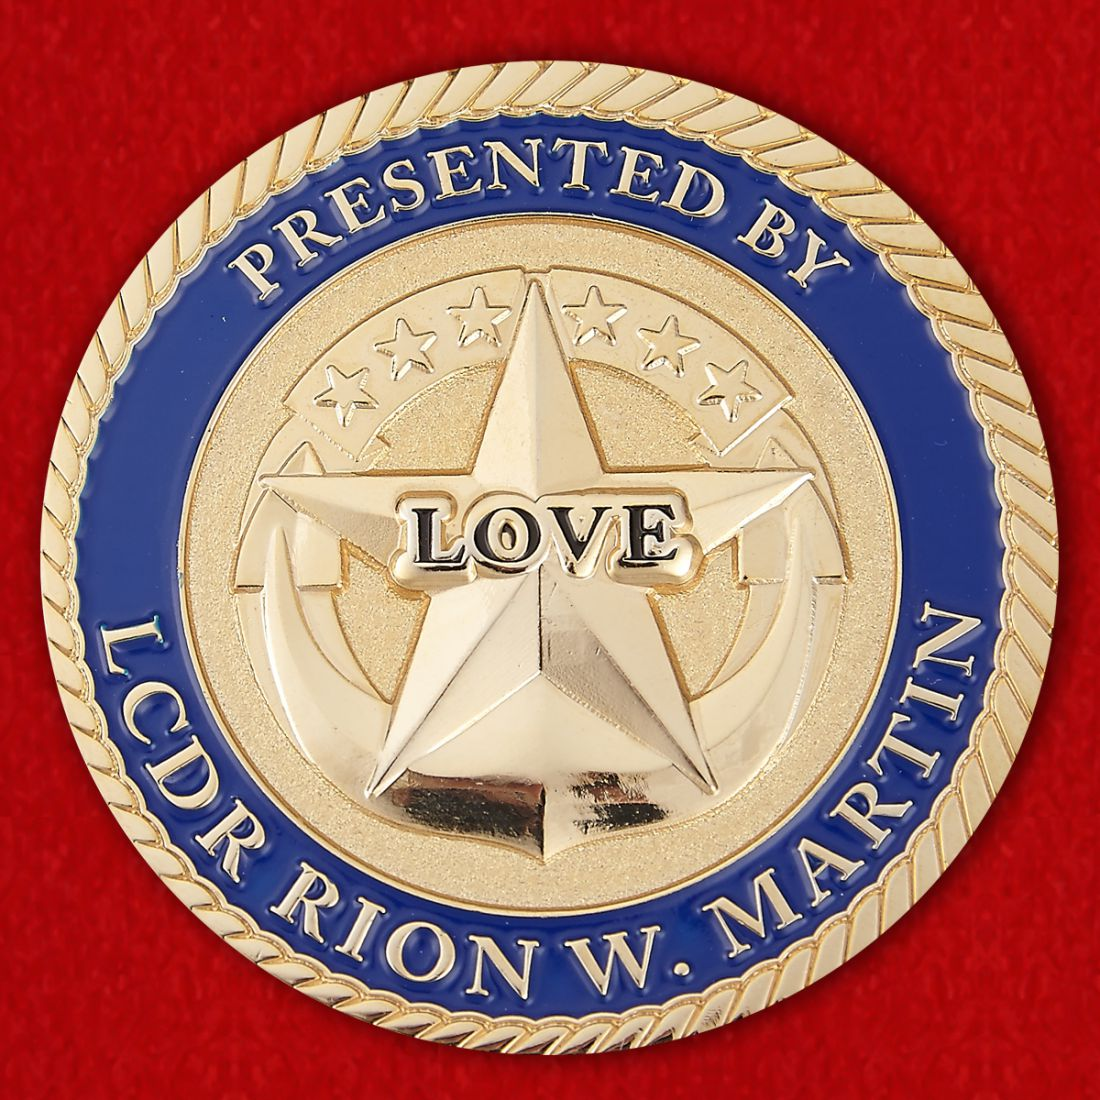 Presented by LCDR Rion W. Martin USS Sentry (MCM-3) Challenge Coin